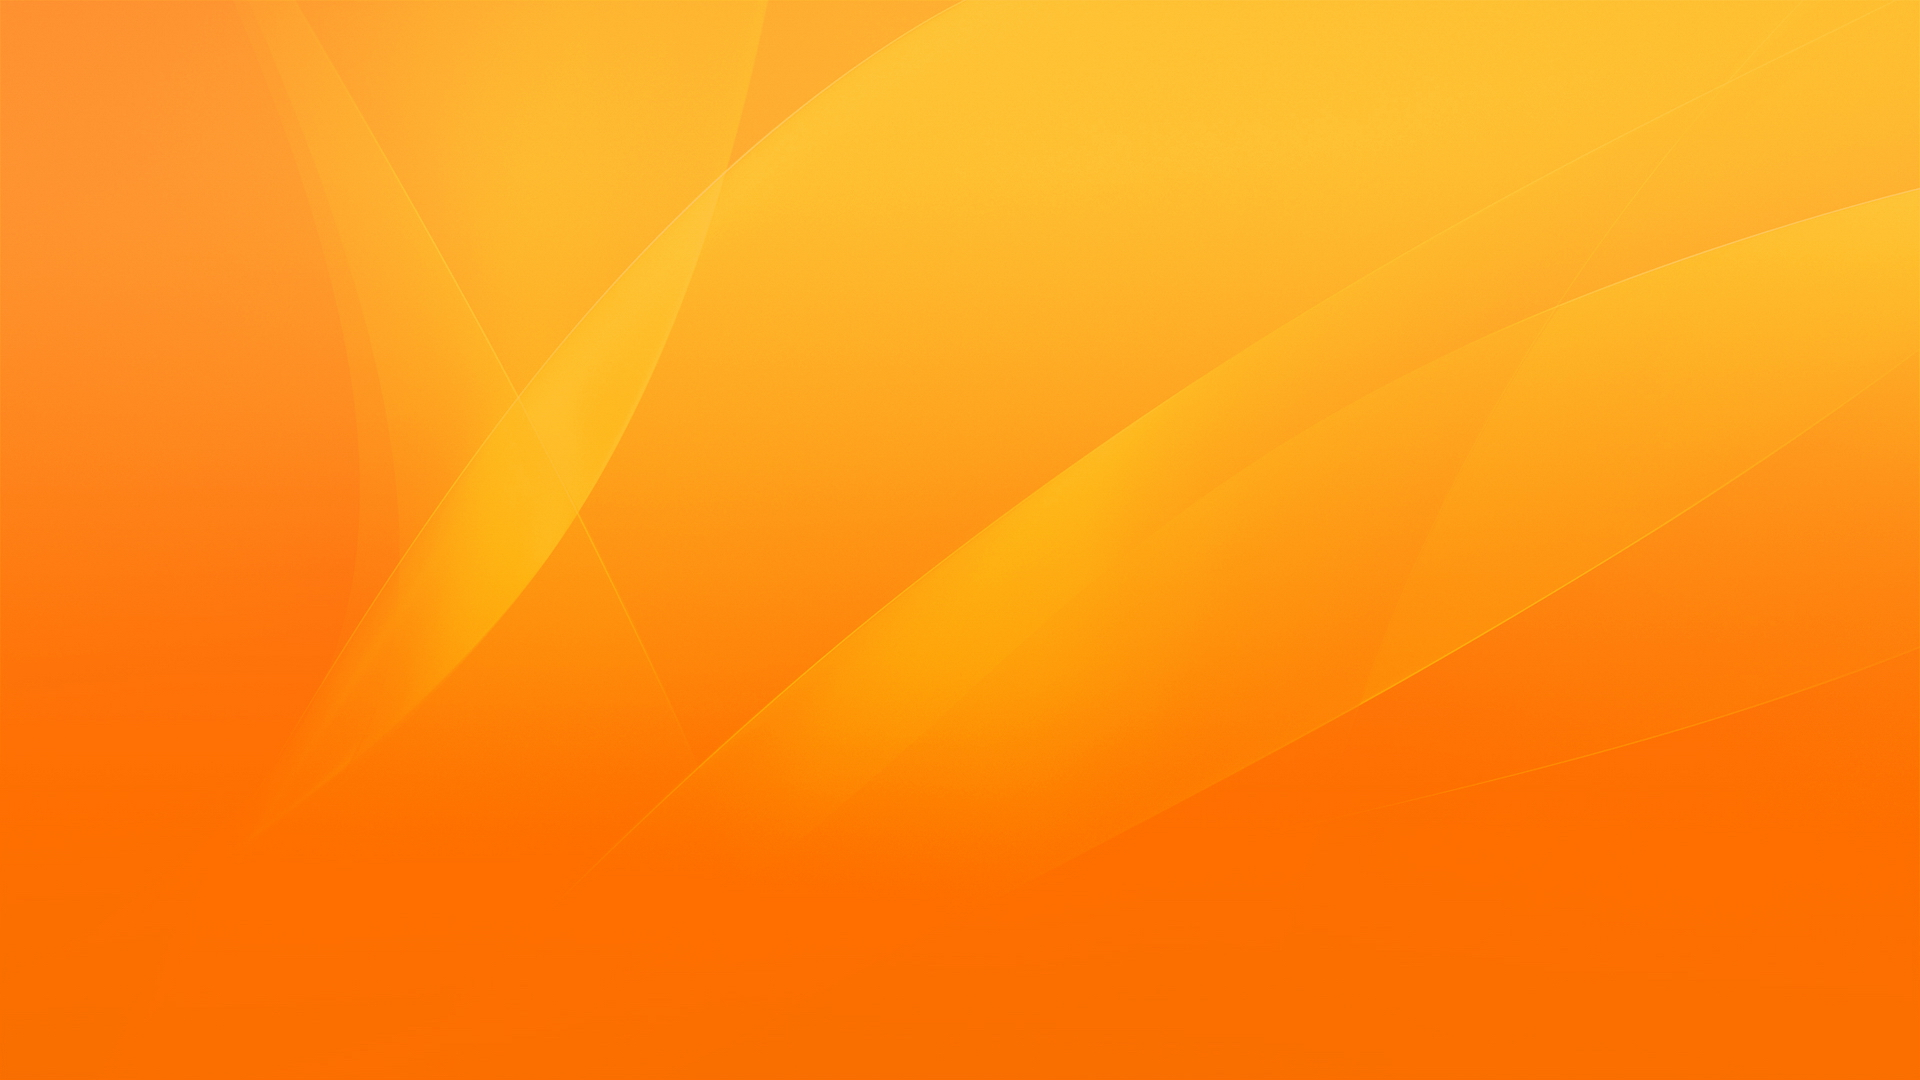 Orange Wallpaper